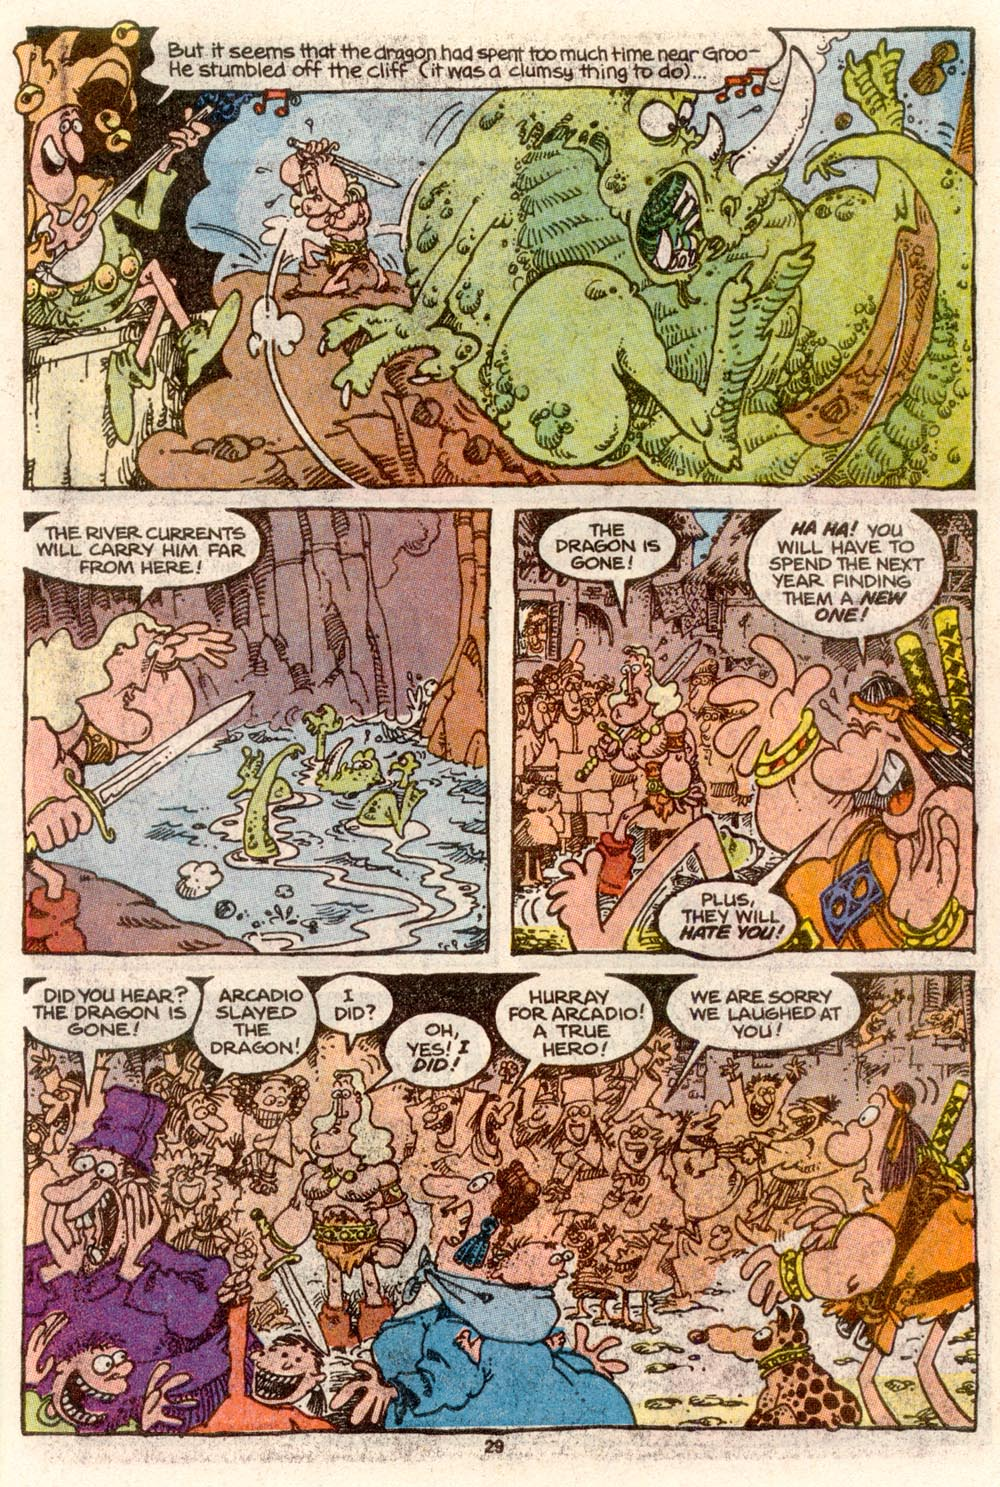 Read online Sergio Aragonés Groo the Wanderer comic -  Issue #68 - 23